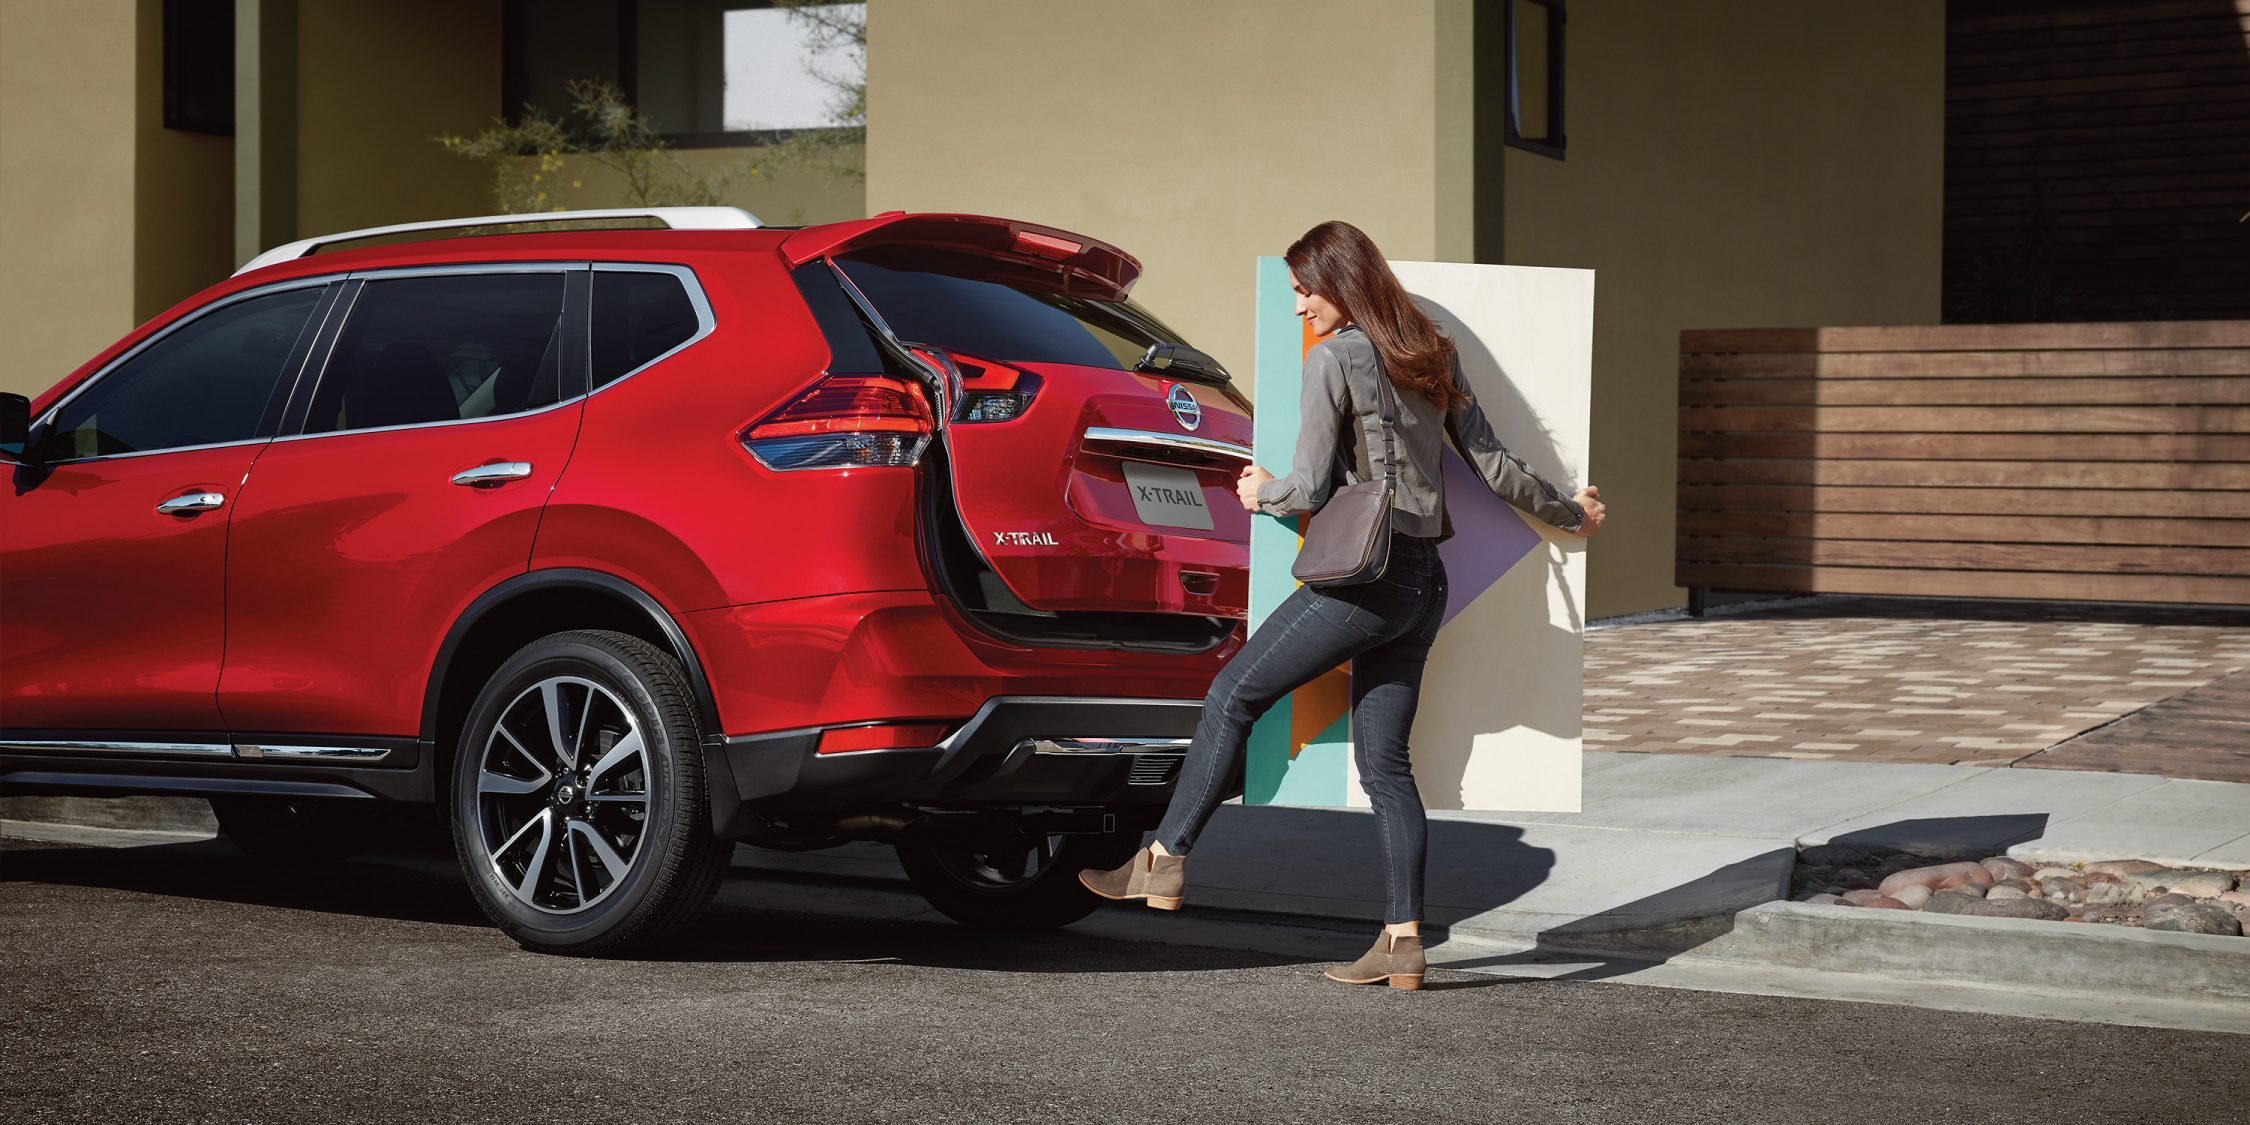 Nissan X-Trail MOTION ACTIVATED LIFTGATE